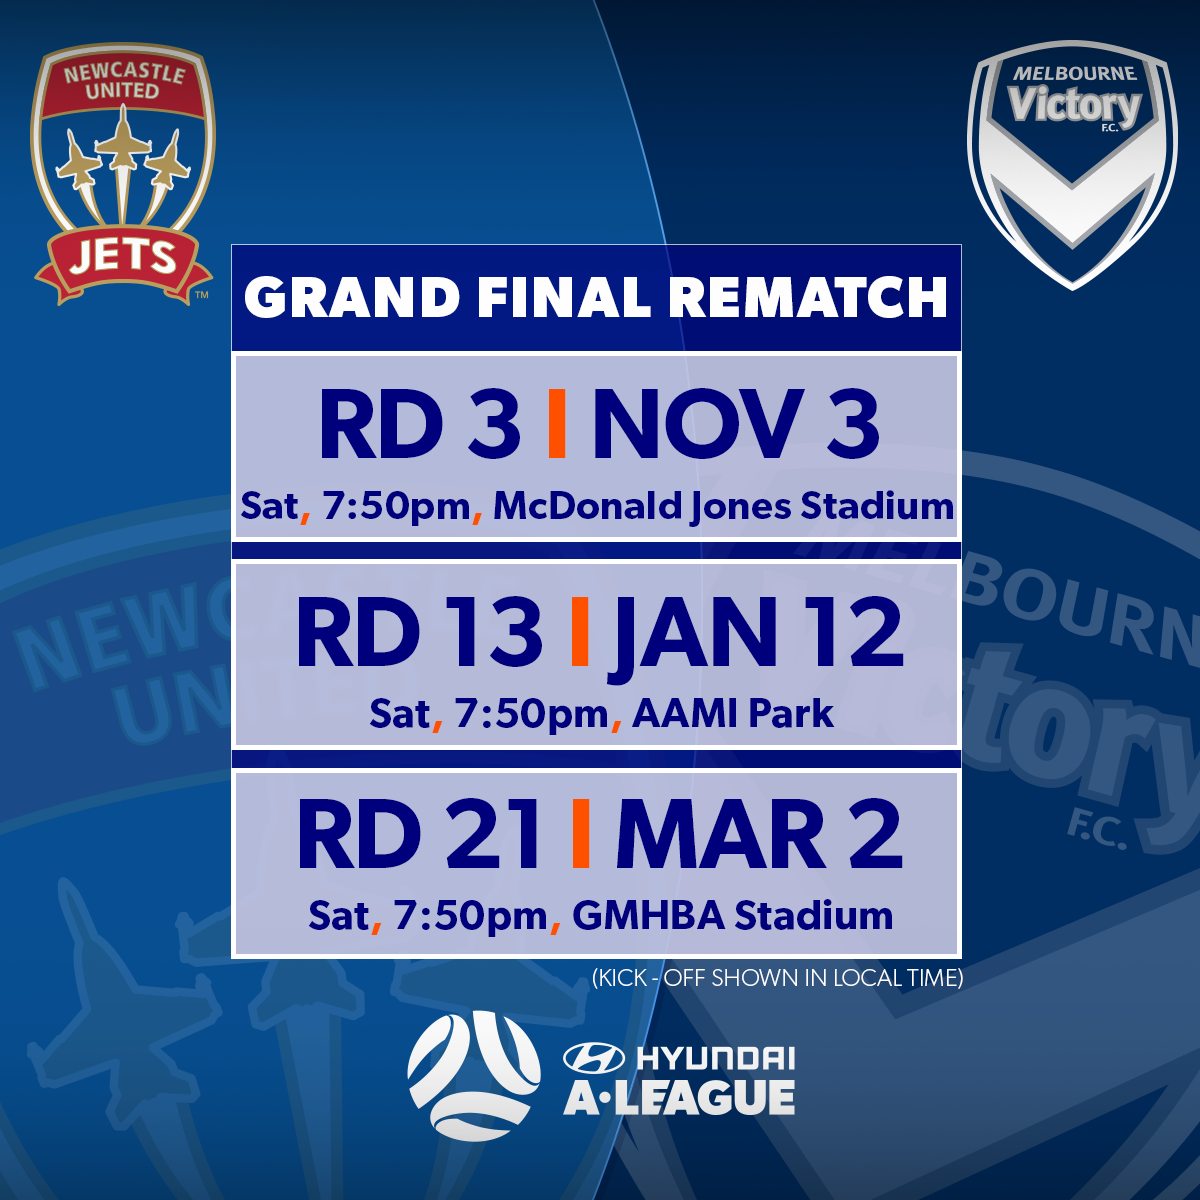 Grand Final rematch